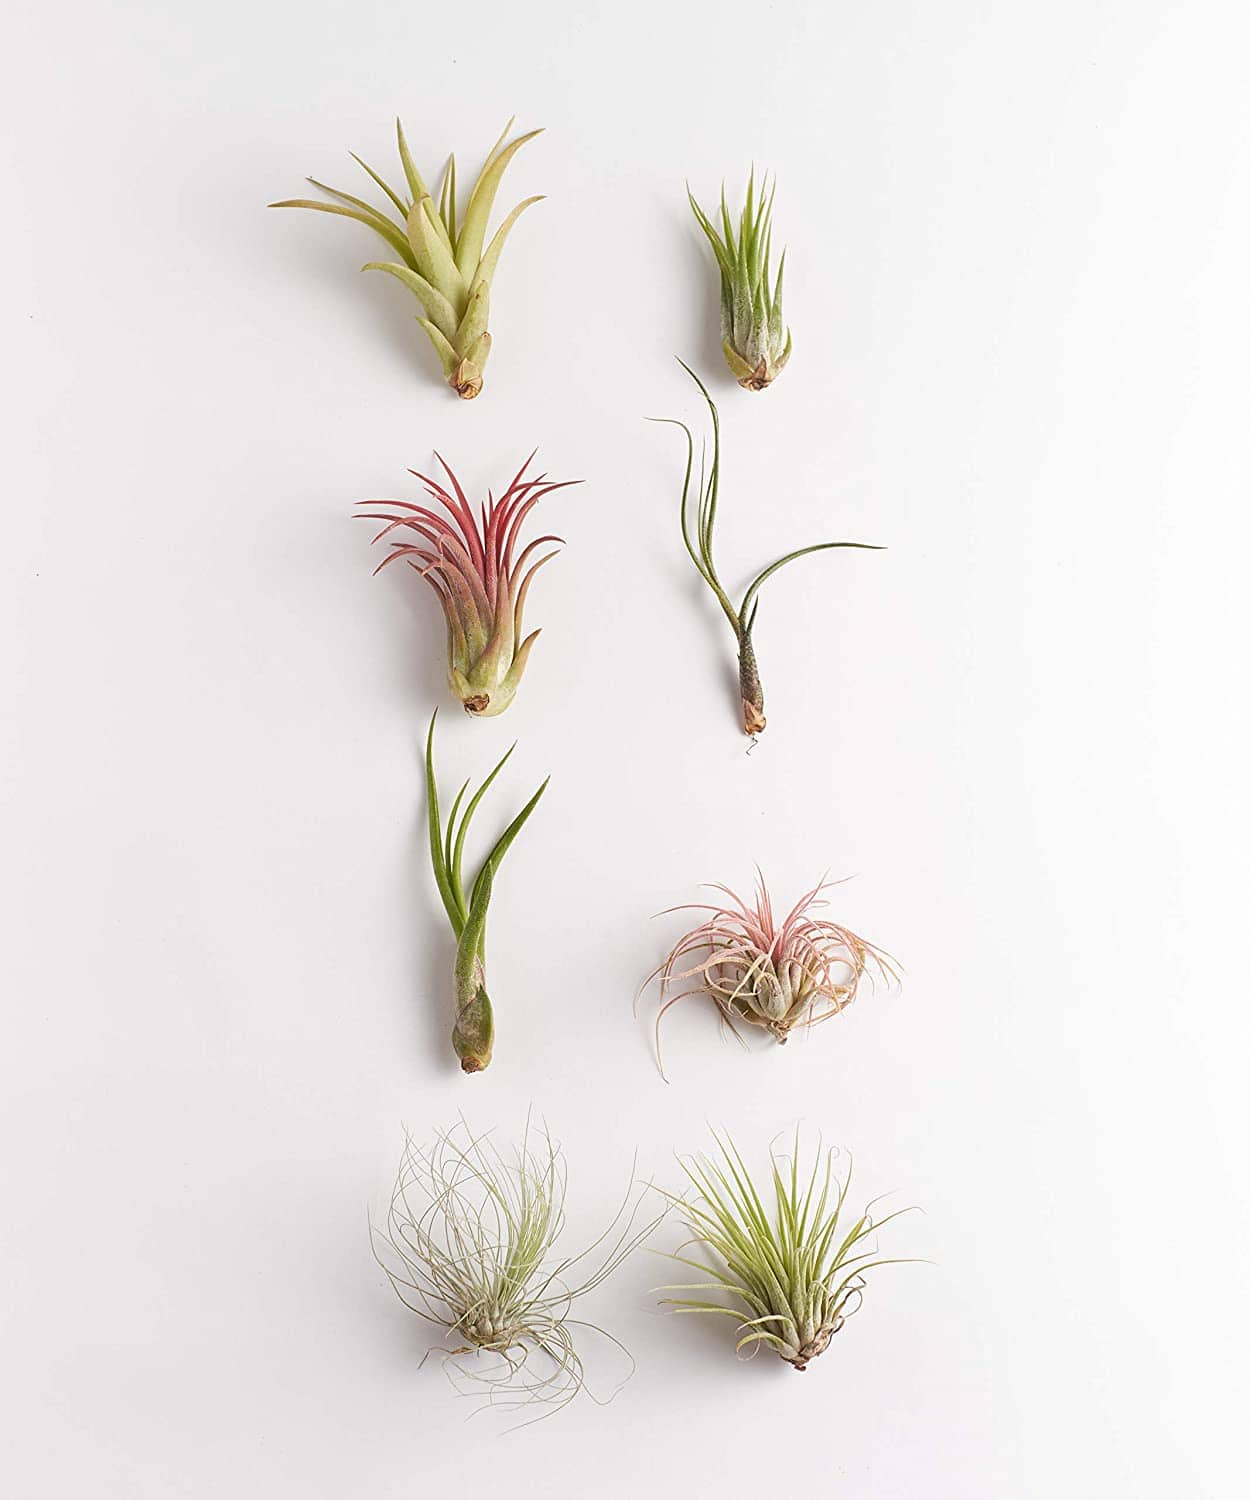 8-Pack Purifying Live Indoor Air Plants $12 ($1.50 each) + Free Shipping w/ Prime or on $25+